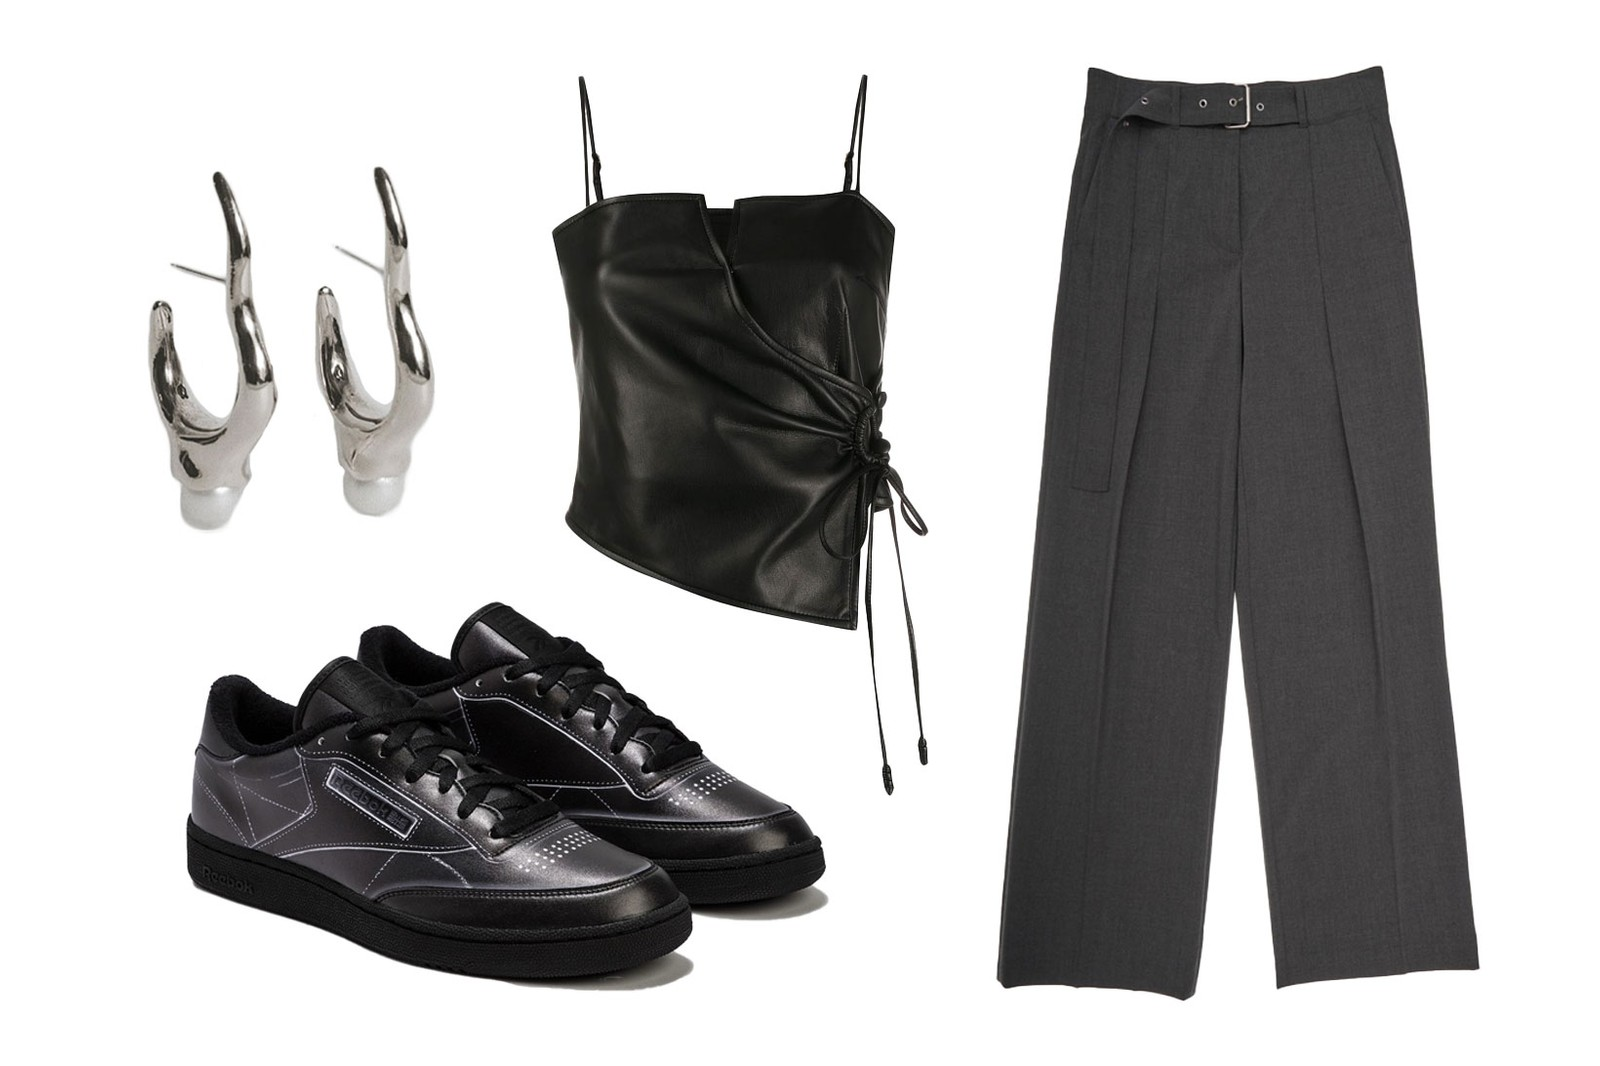 gray outfit ideas spring summer editors style guide mm6 maison margiela dion lee